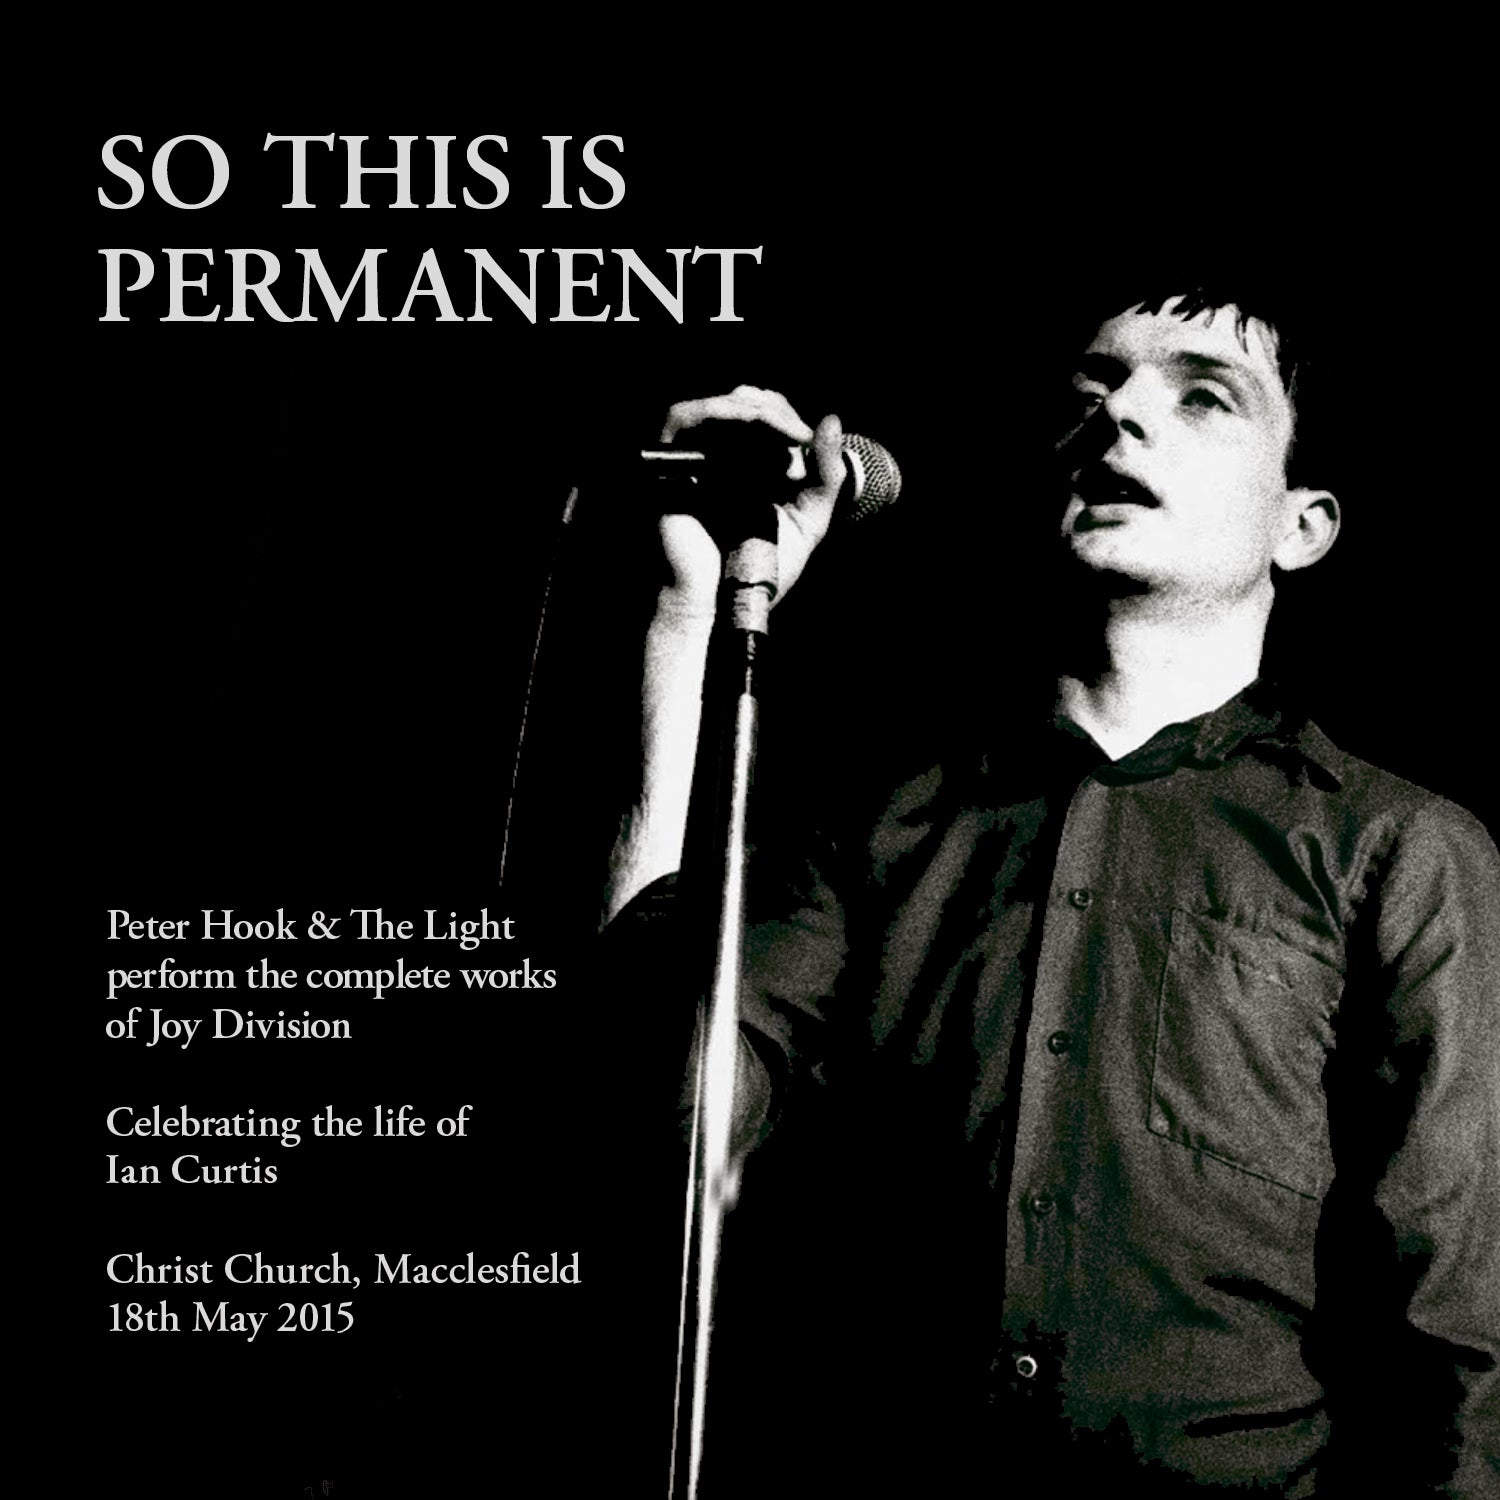 Peter Hook & the Light - So This Is Permanent - Download (MP3 or WAV)